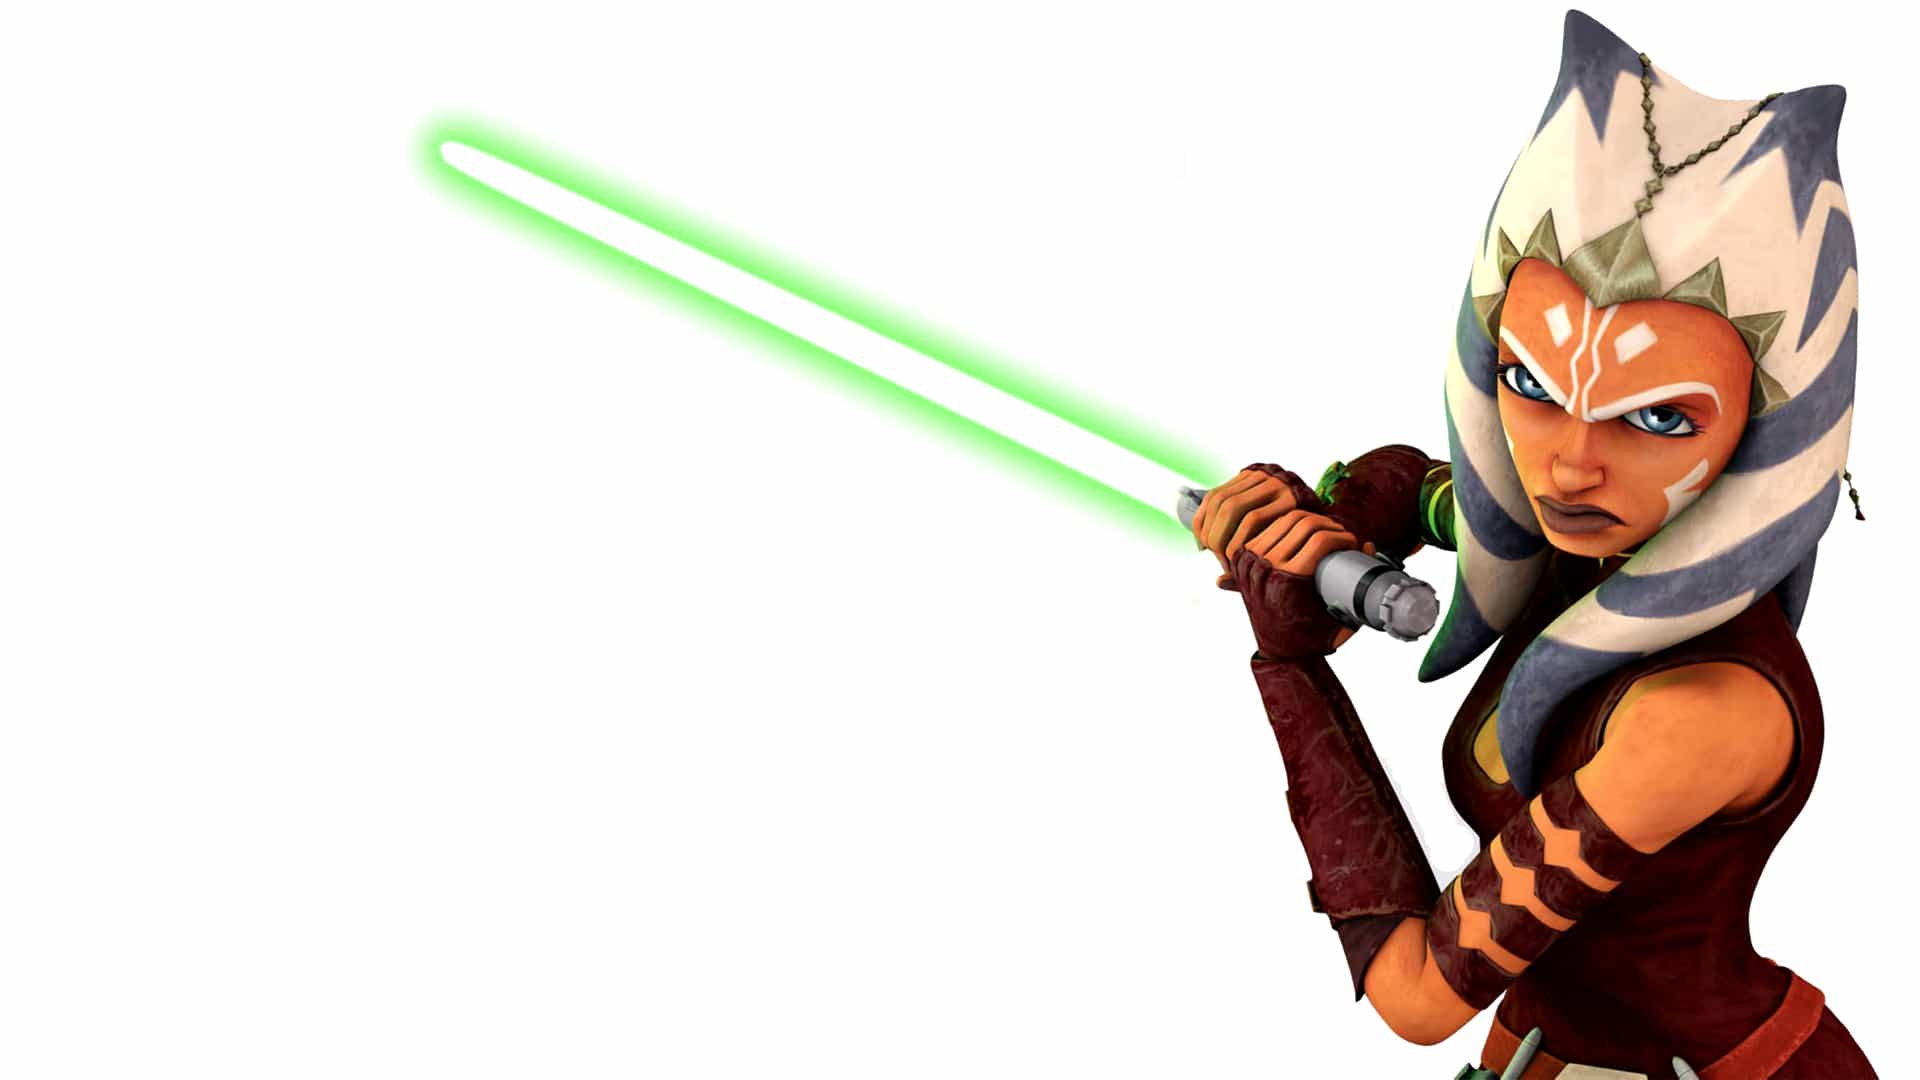 Star Wars Ahsoka Amp Marvel Moon Knight Hot Topic Exclusive Pop Vinyls Coming To Stan Lee S Lacc